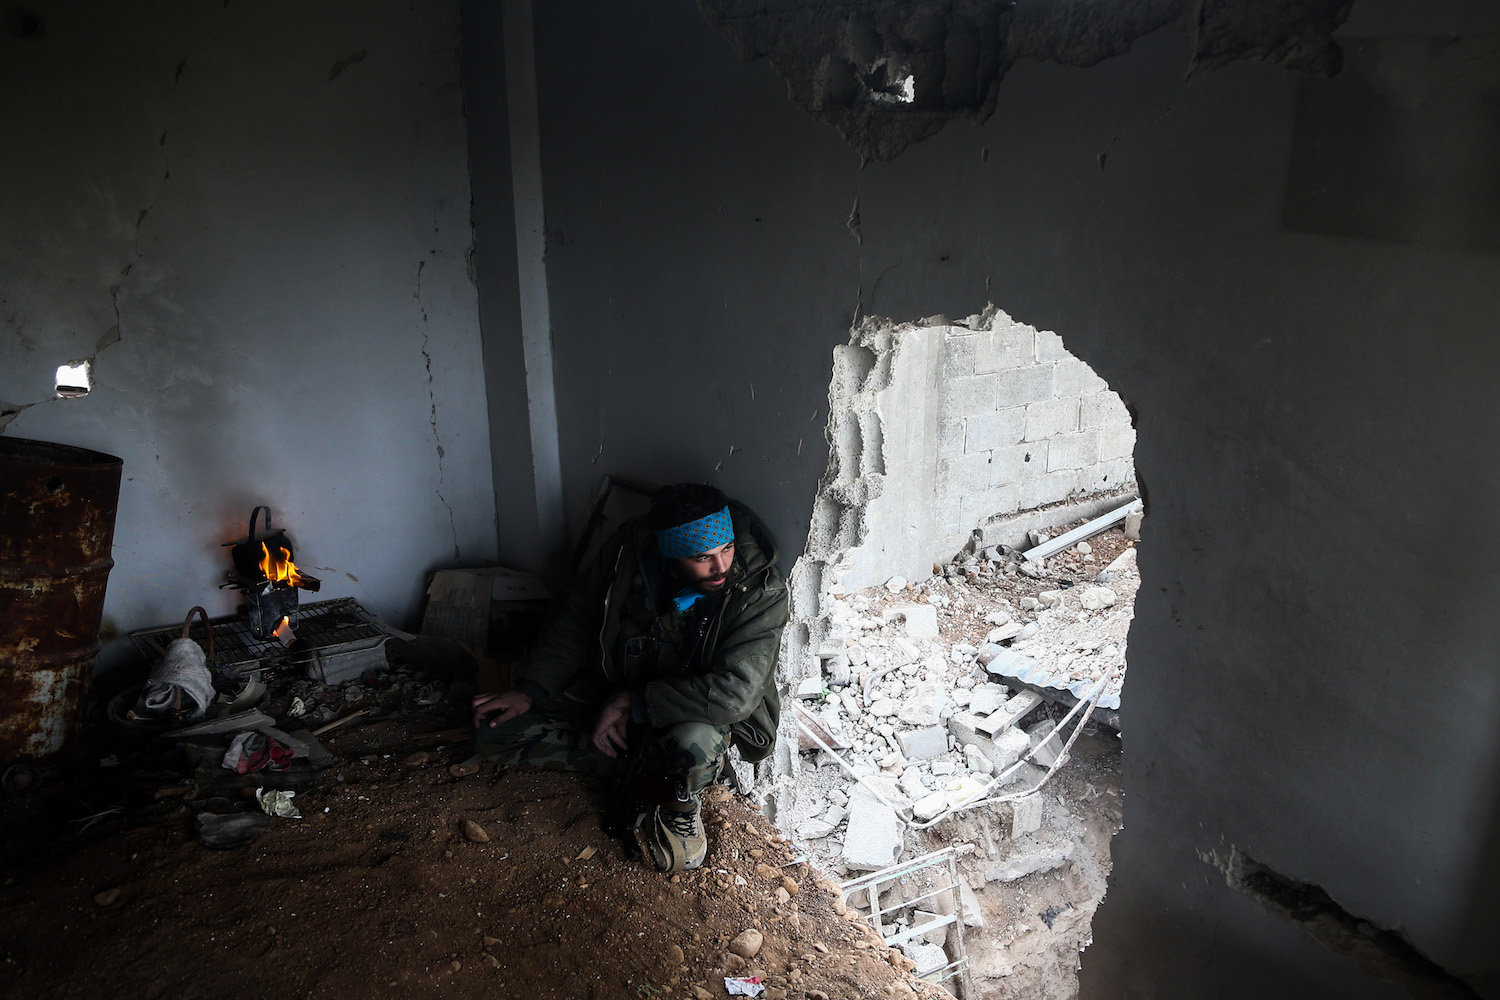 TOPSHOT - A Syrian opposition fighter from Failaq al-Rahman brigade sits by a fire next to a hole in a wall in a damaged building on the frontline in the rebel-held enclave of Arbin in the Eastern Ghouta near Damascus on February 15, 2018. / AFP PHOTO / ABDULMONAM EASSA        (Photo credit should read ABDULMONAM EASSA/AFP/Getty Images)